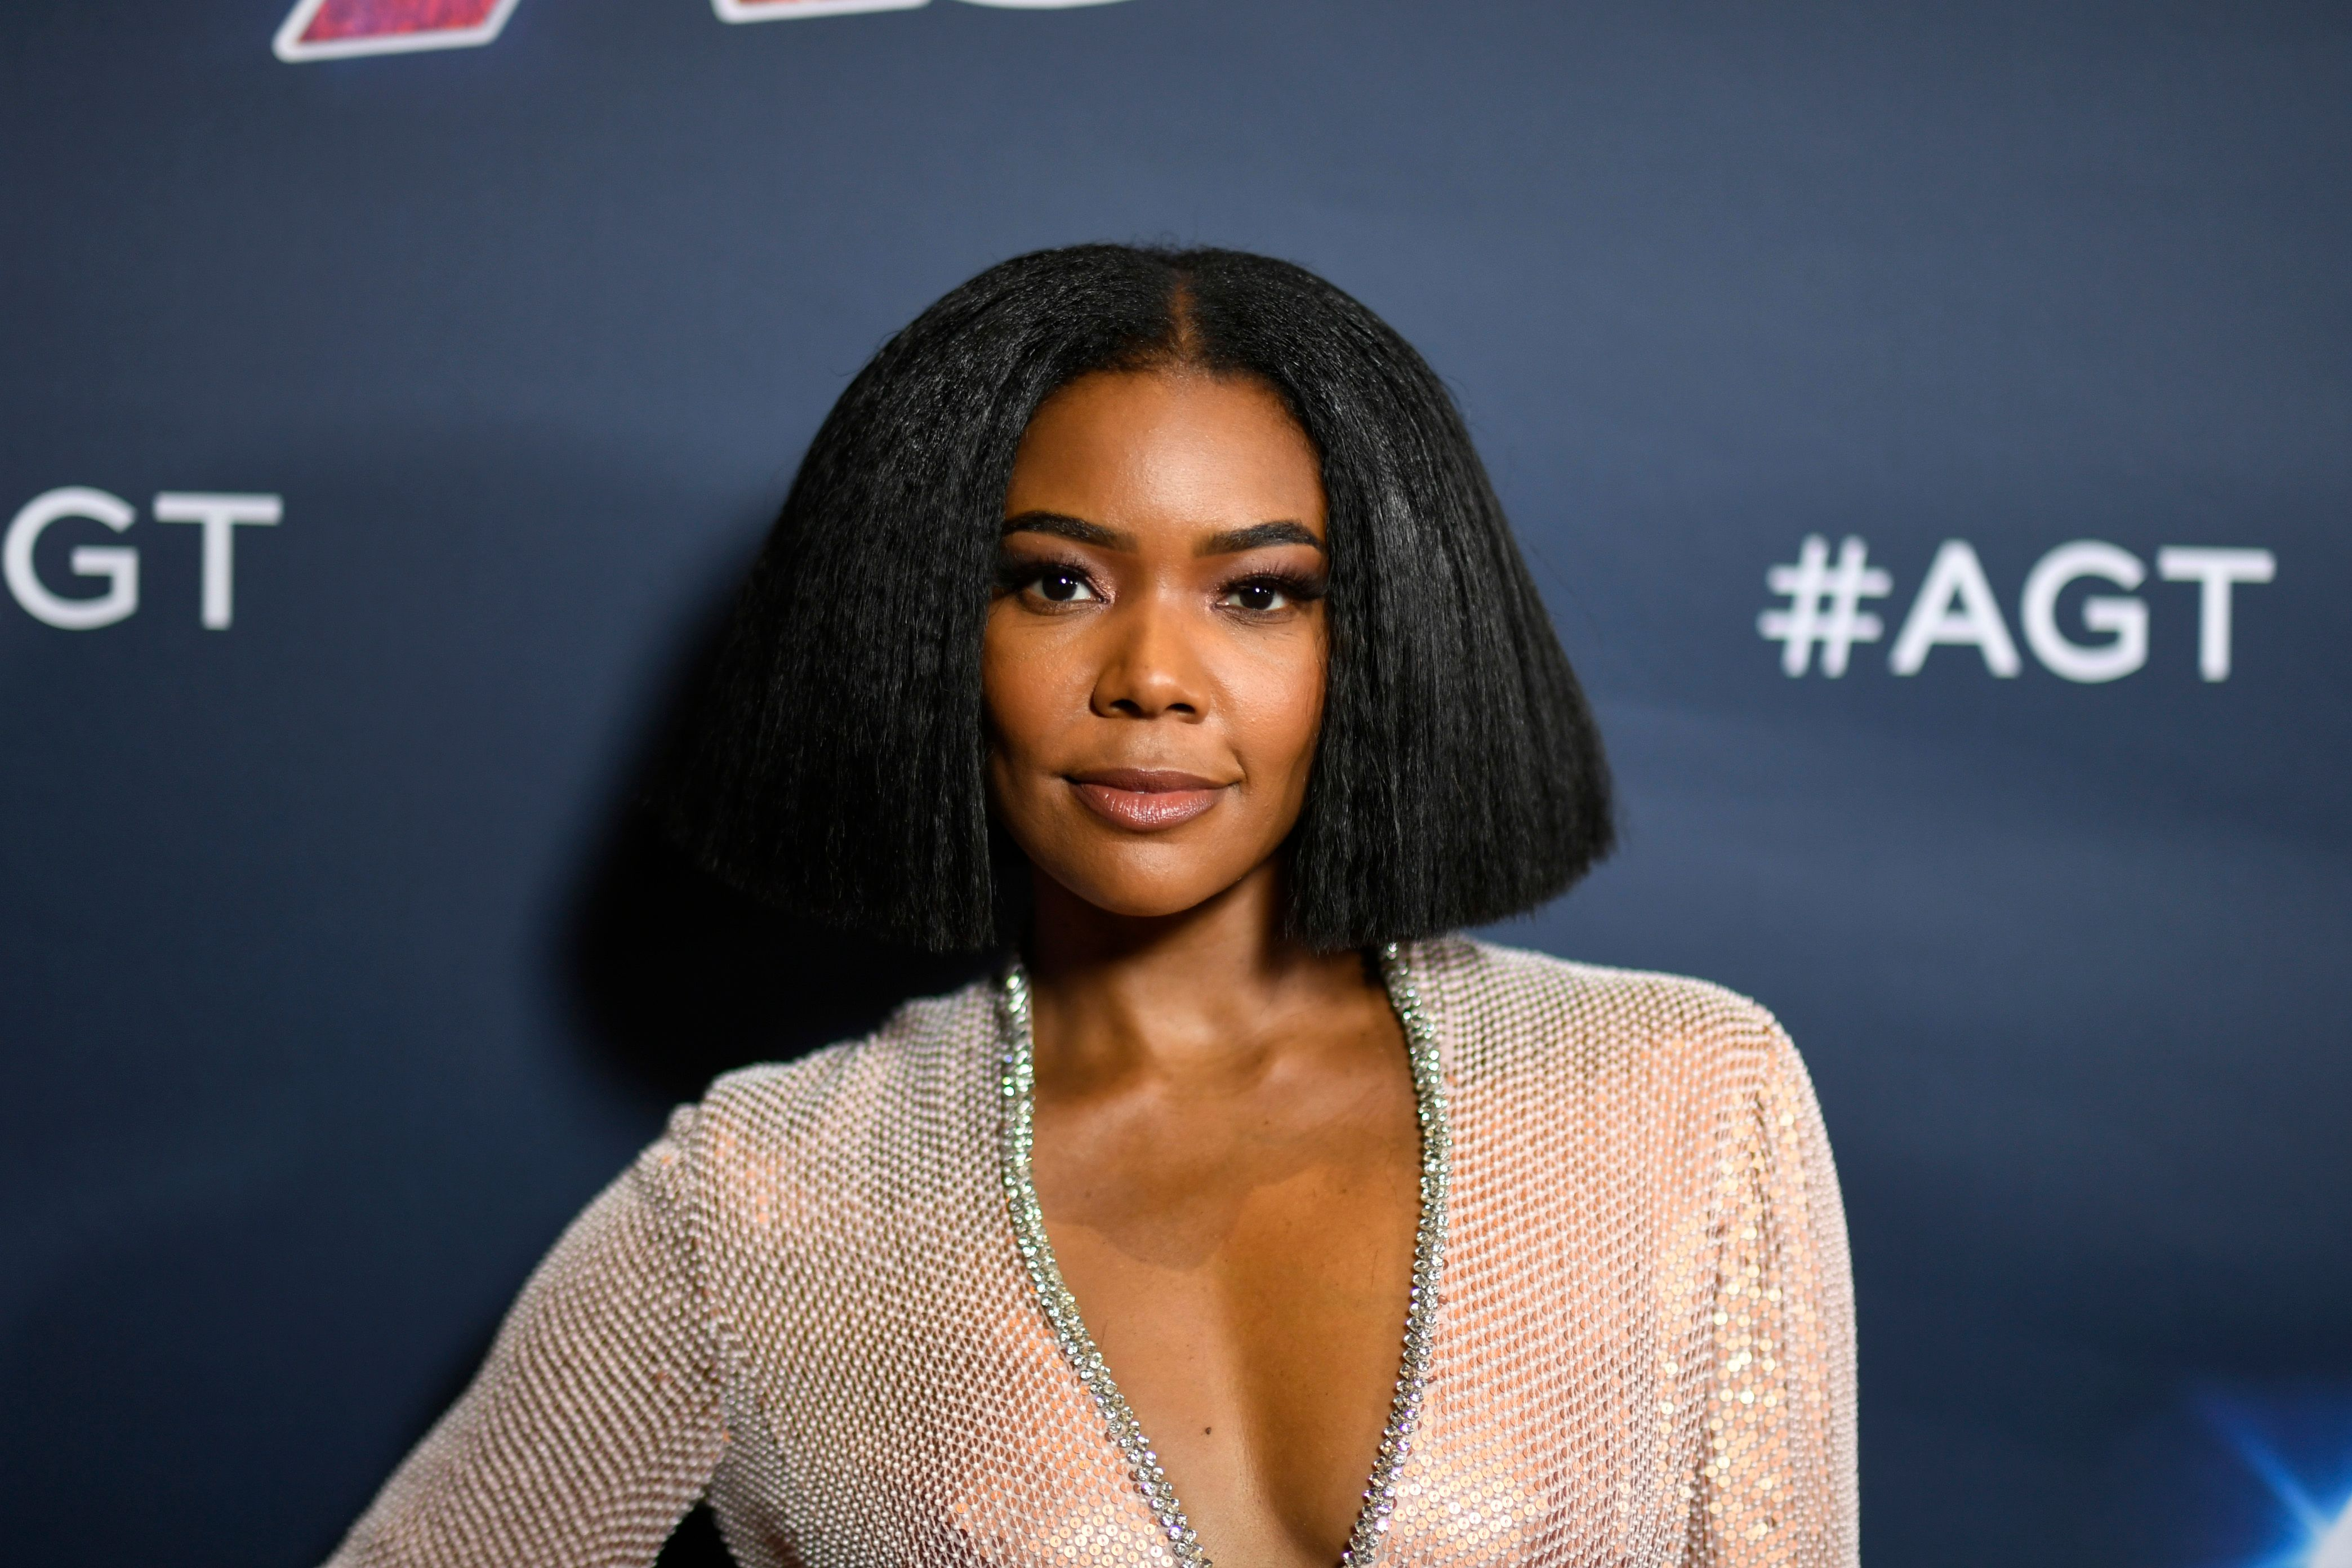 Gabrielle Union poses for photographers